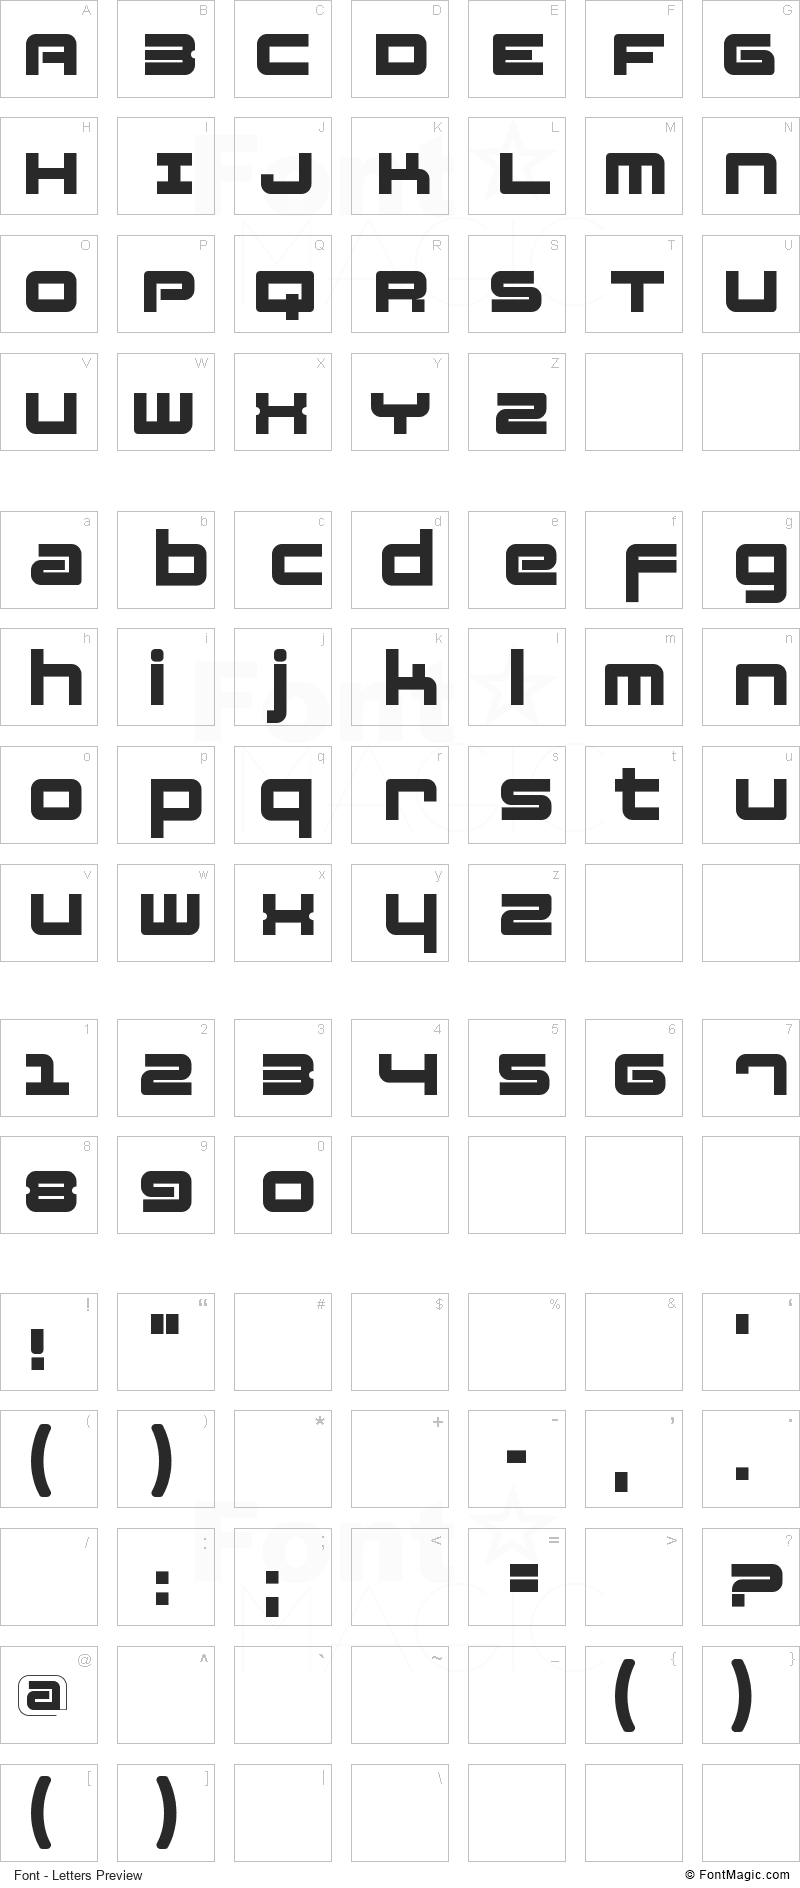 Fatsans Font - All Latters Preview Chart